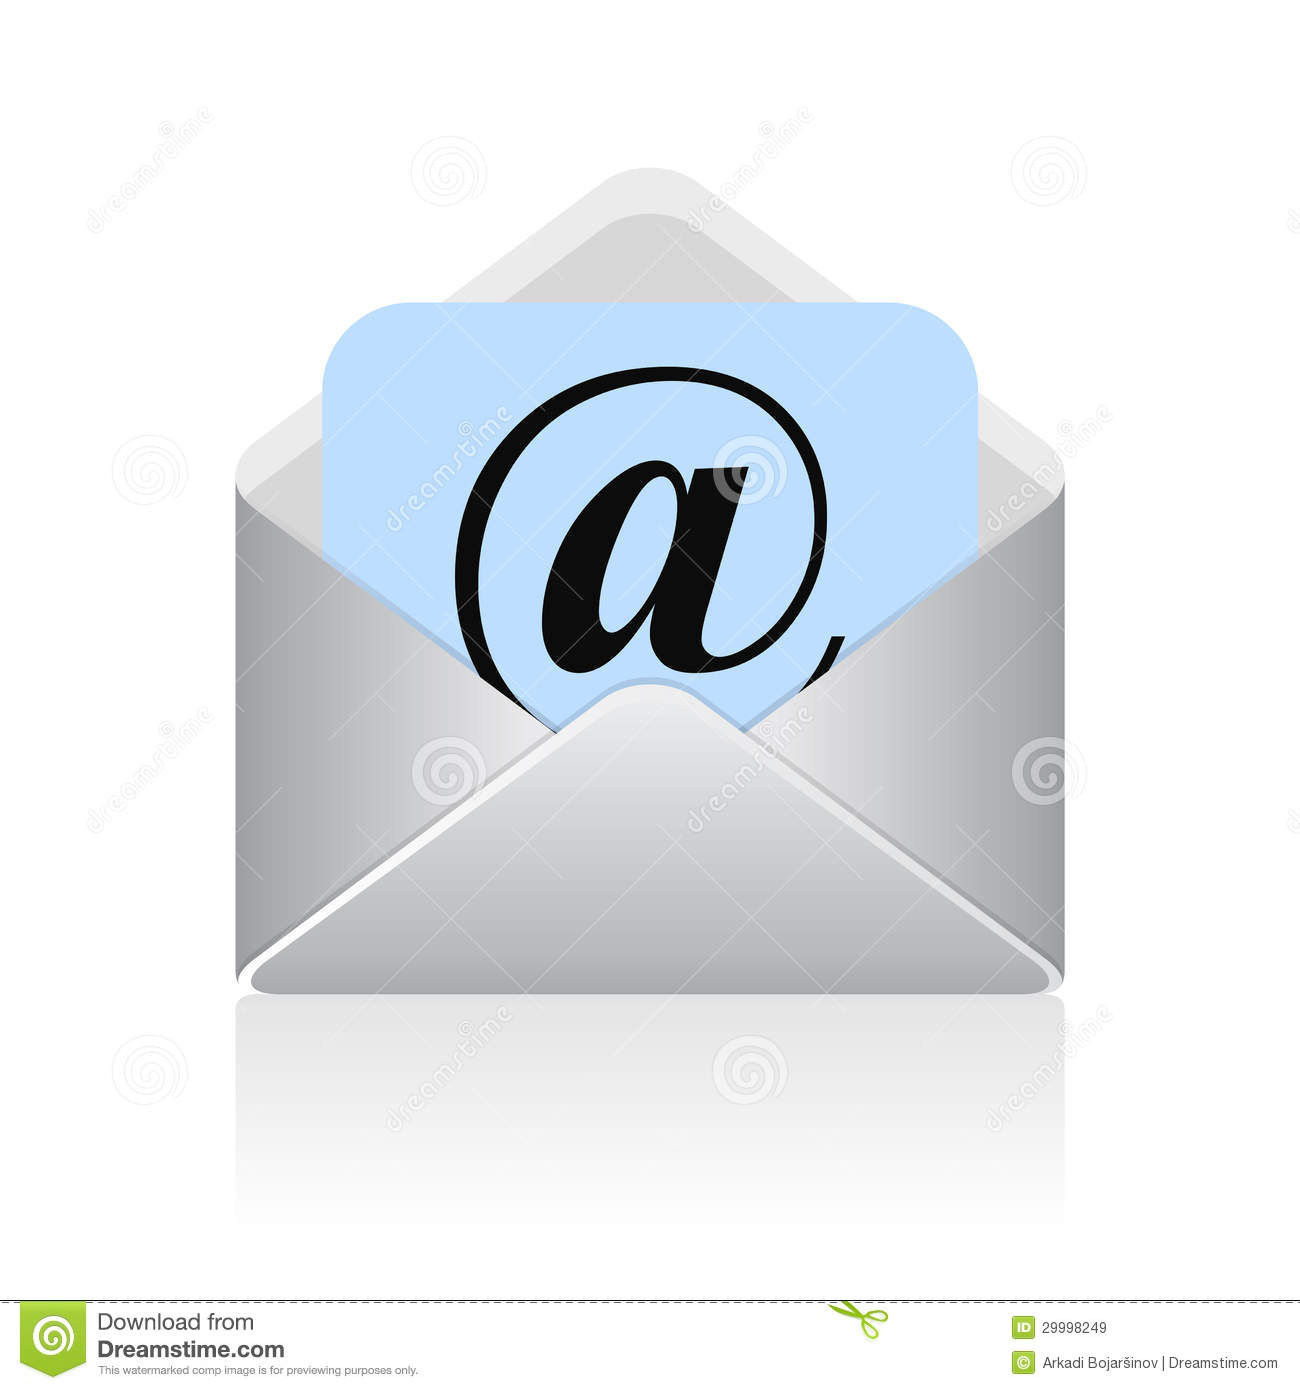 symbole d u0026 39 email de vecteur illustration de vecteur  illustration du  u00e9tiquette